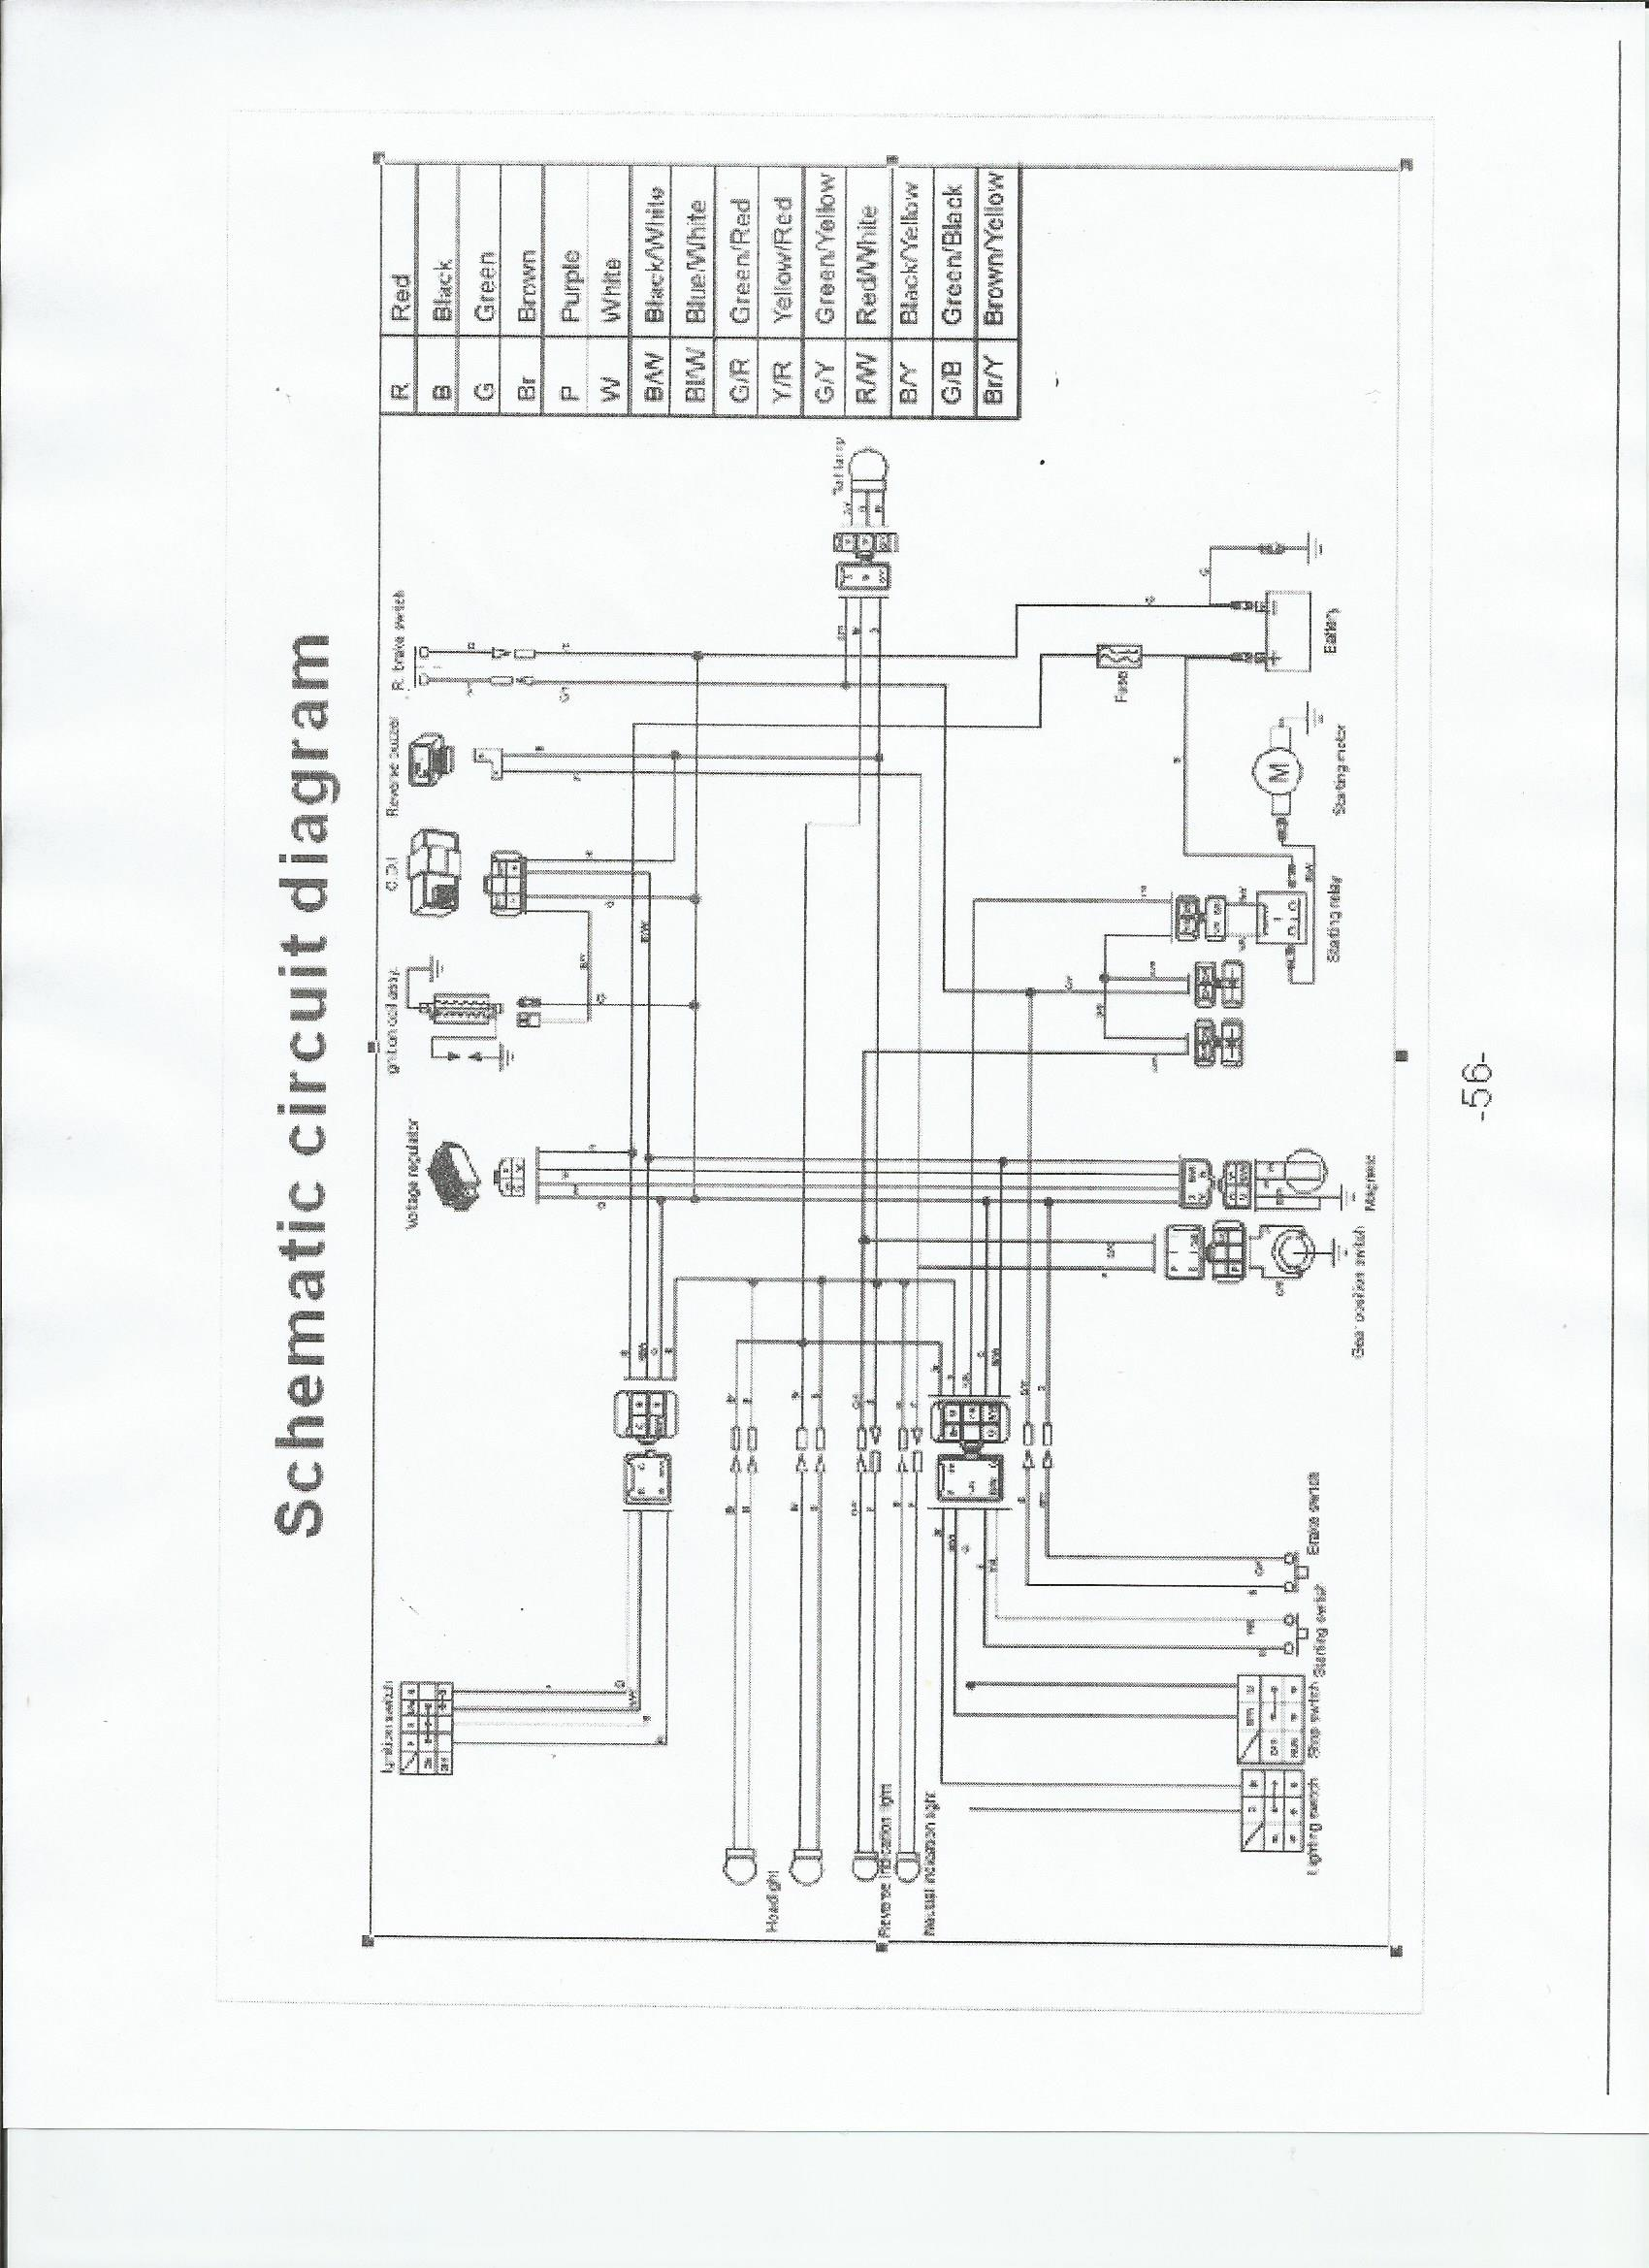 wire schematic for buyang atv